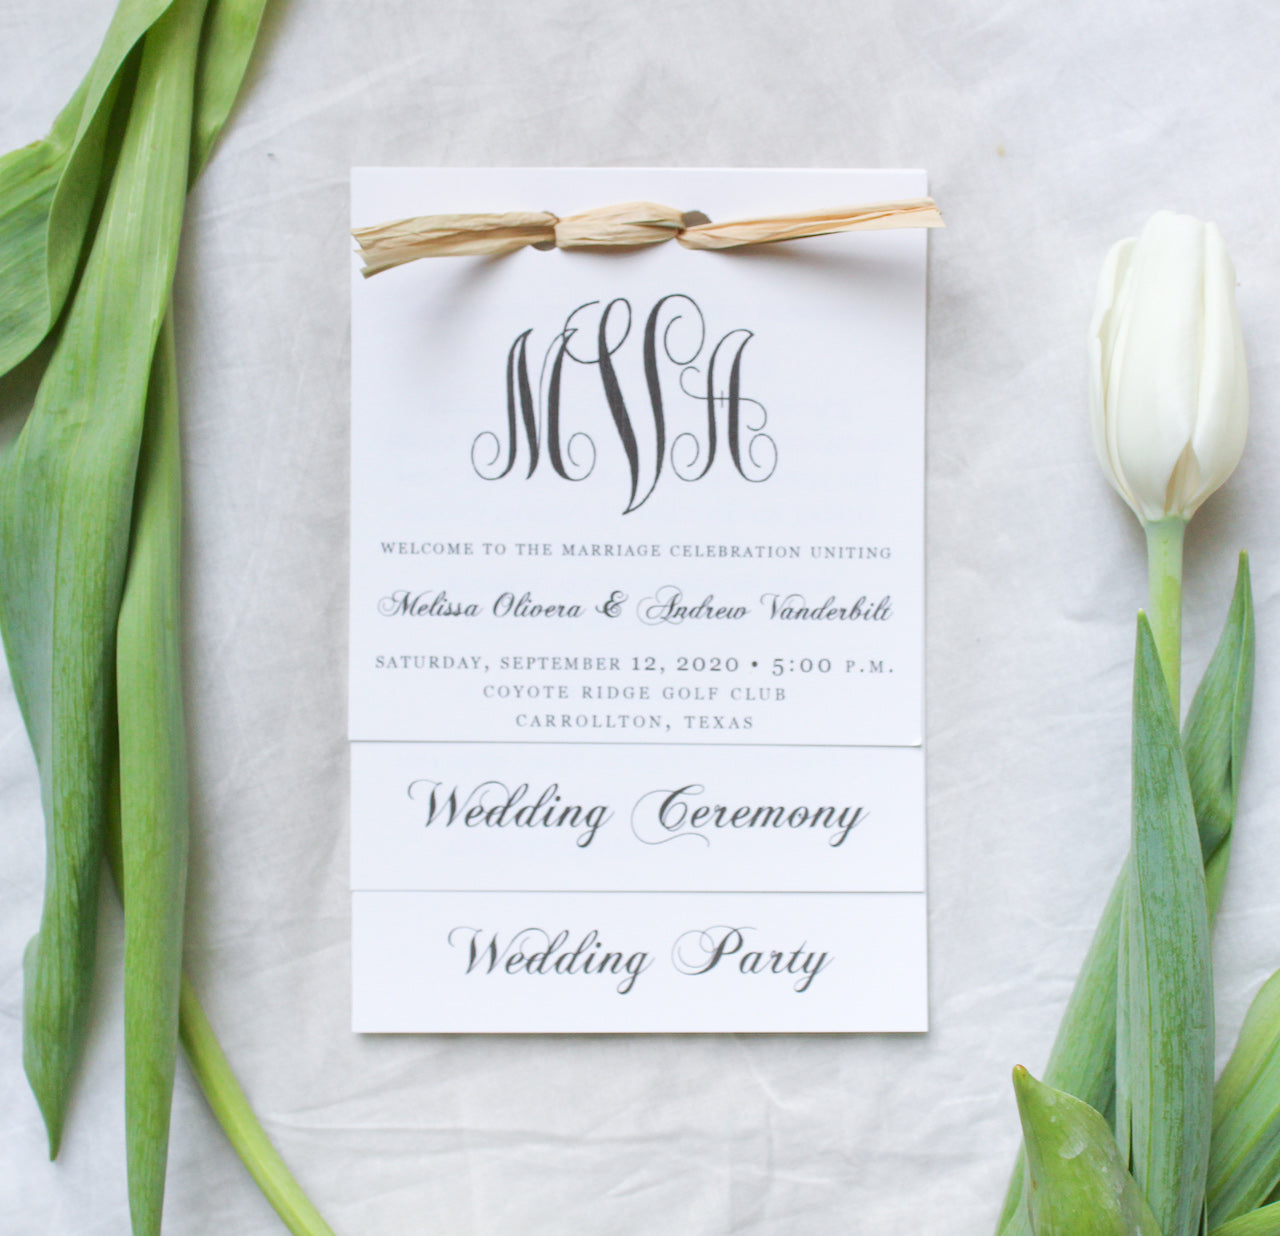 classic southern monogram elegant calligraphy layered wedding invitations sustainably printed on 100% recycled paper